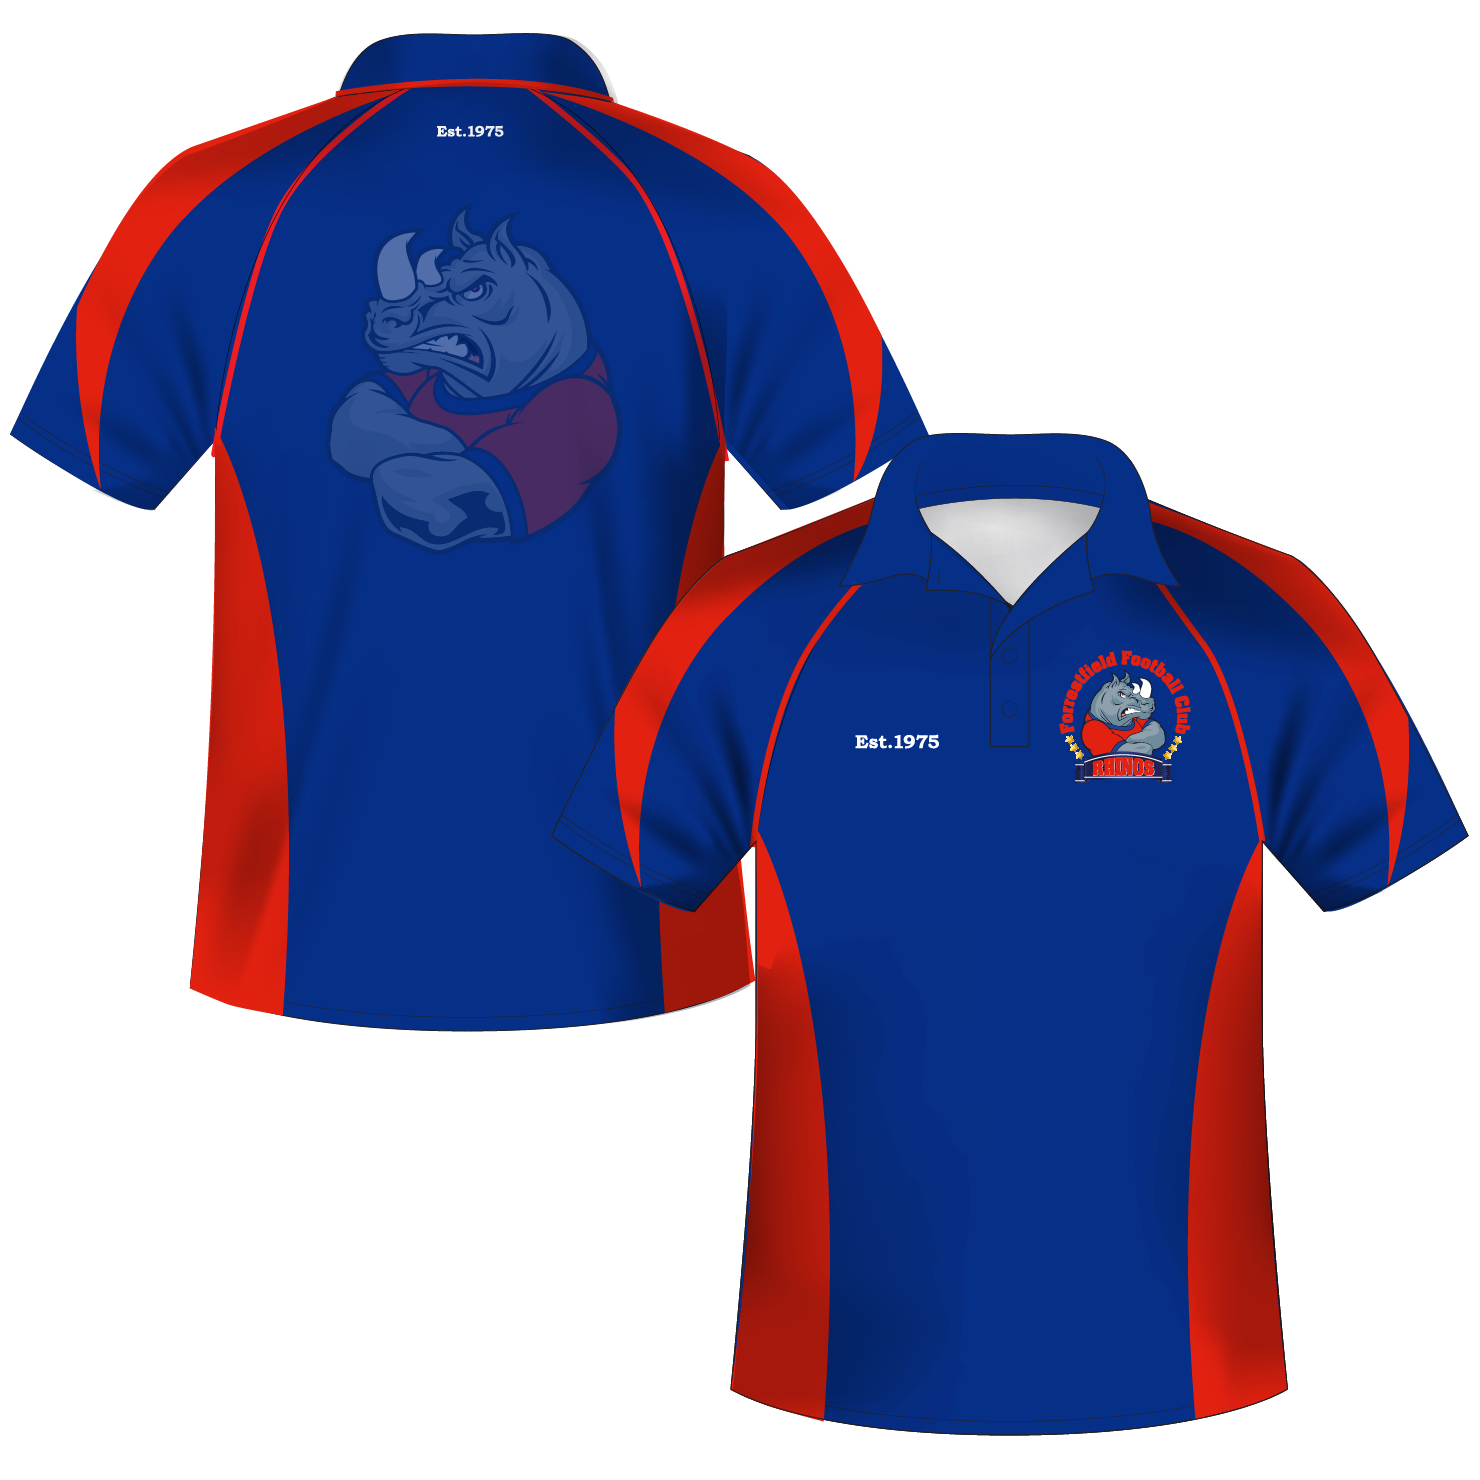 Club Polo Shirt